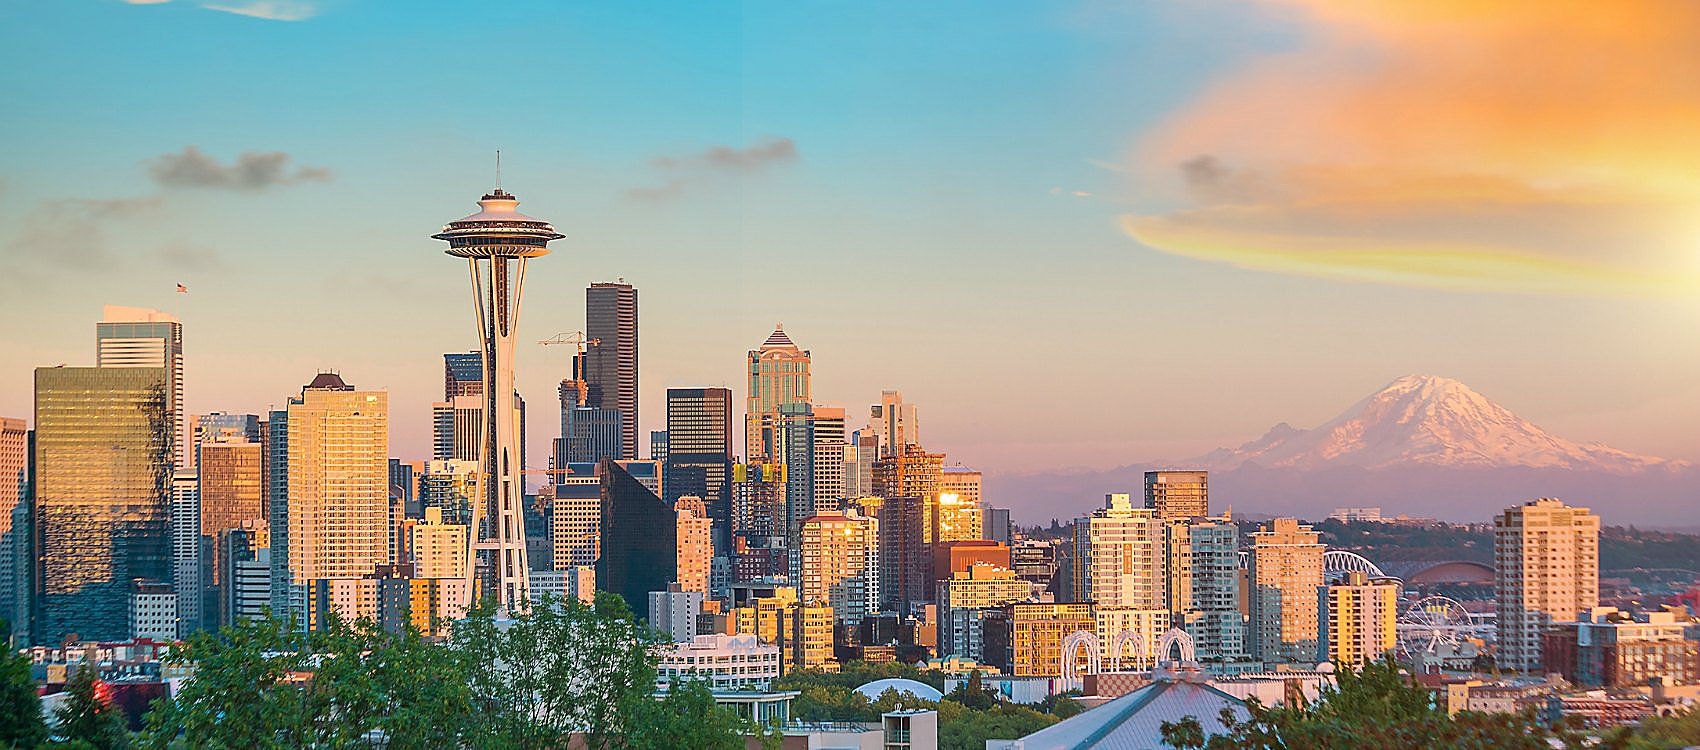 Best Boutique Hotels in Downtown Seattle, WA | Kimpton Hotels on seattle downtown shopping, federal way hotel map, miami south beach hotel map, seattle downtown apartments, colorado springs airport hotel map, totem lake hotel map, ballard hotel map, seattle seahawks map, seattle city map, vancouver hotel map, bellingham hotel map, kent hotel map, renton hotel map,